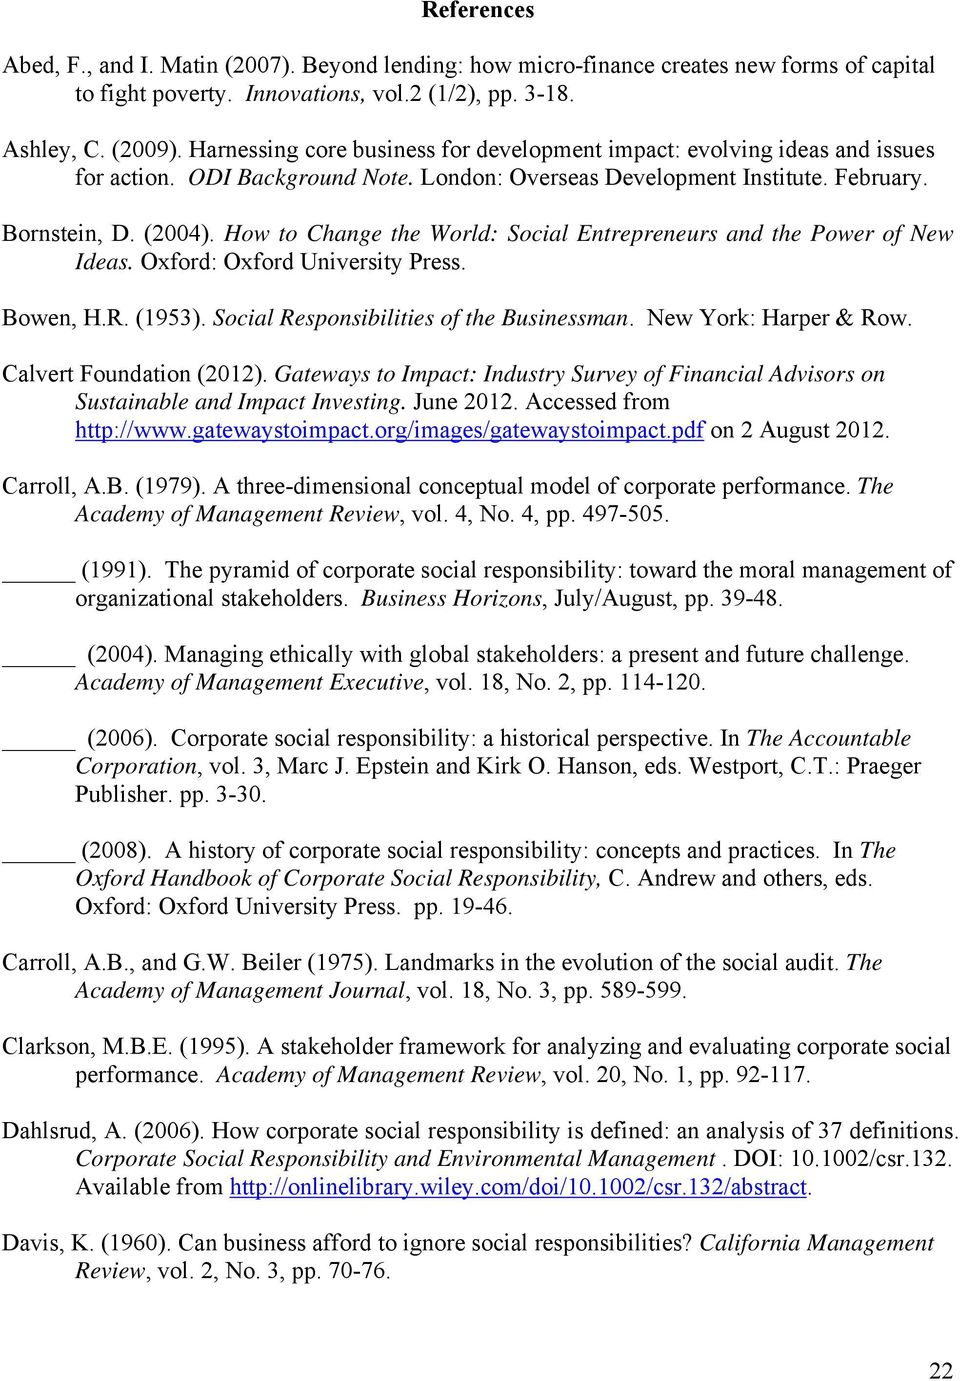 CHAPTER II DEVELOPMENTS IN THE CONCEPT OF CORPORATE SOCIAL